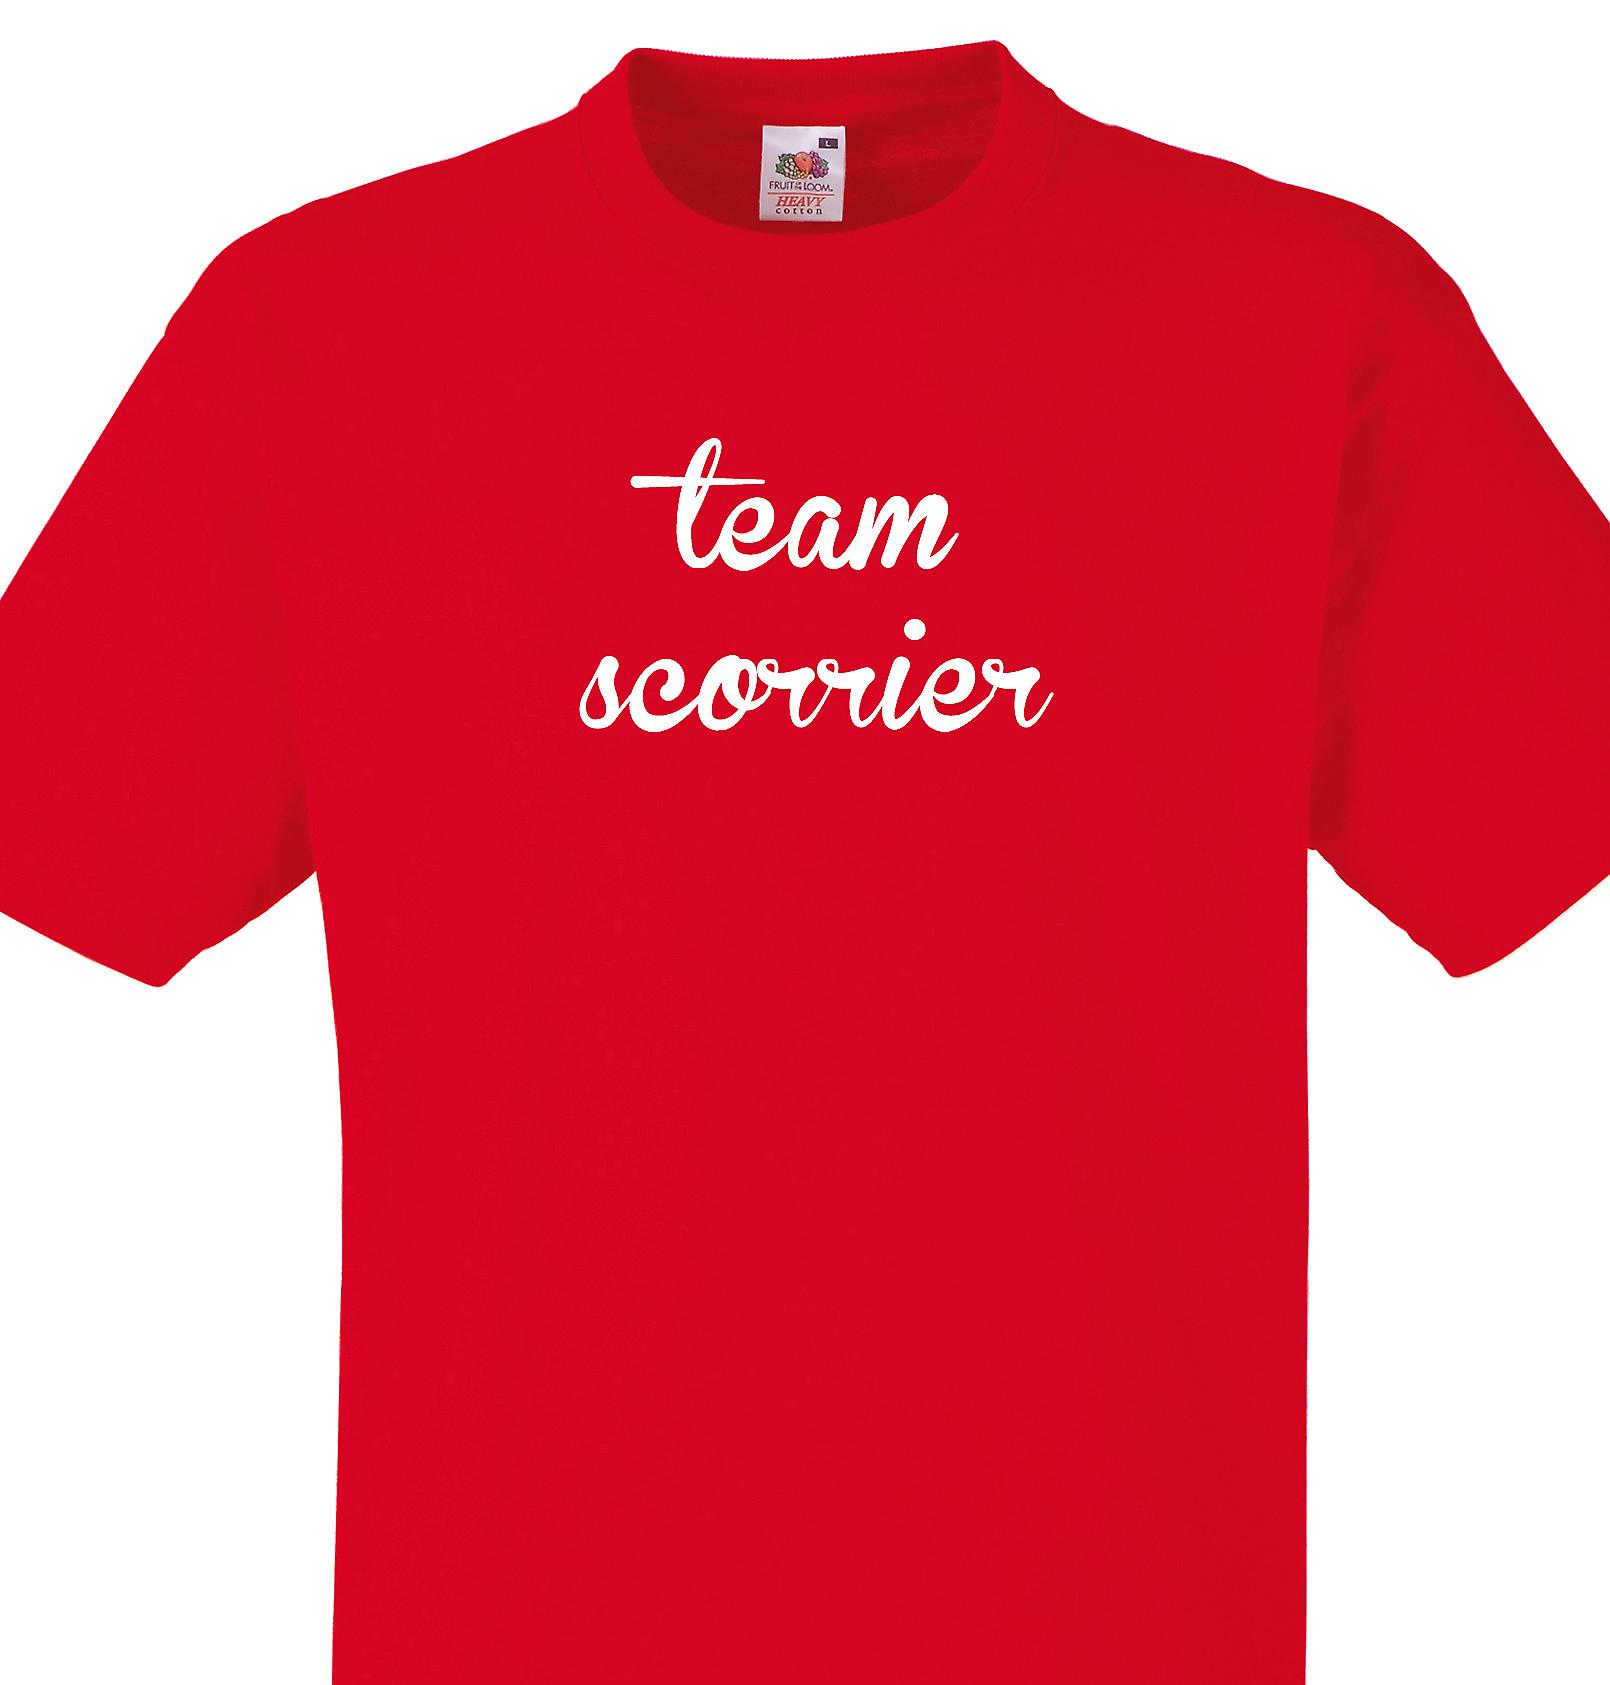 Team Scorrier Red T shirt